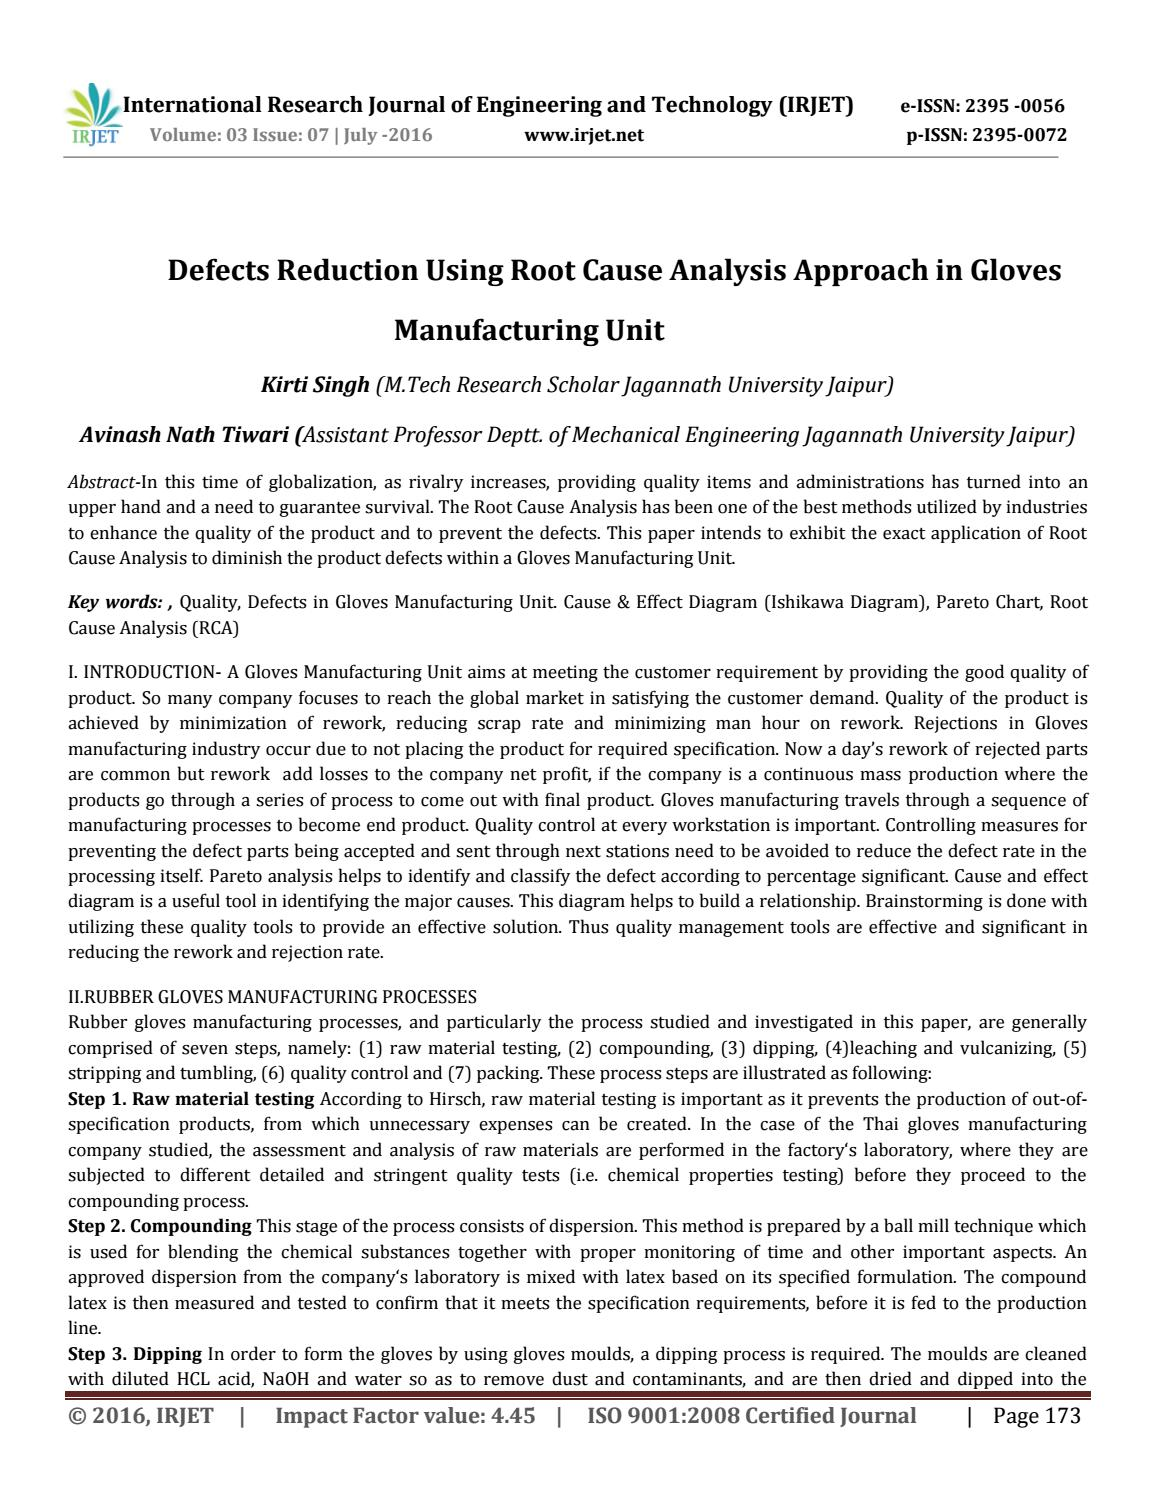 Irjet defects reduction using root cause analysis approach in irjet defects reduction using root cause analysis approach in glovesmanufacturing unit by irjet journal issuu ccuart Image collections